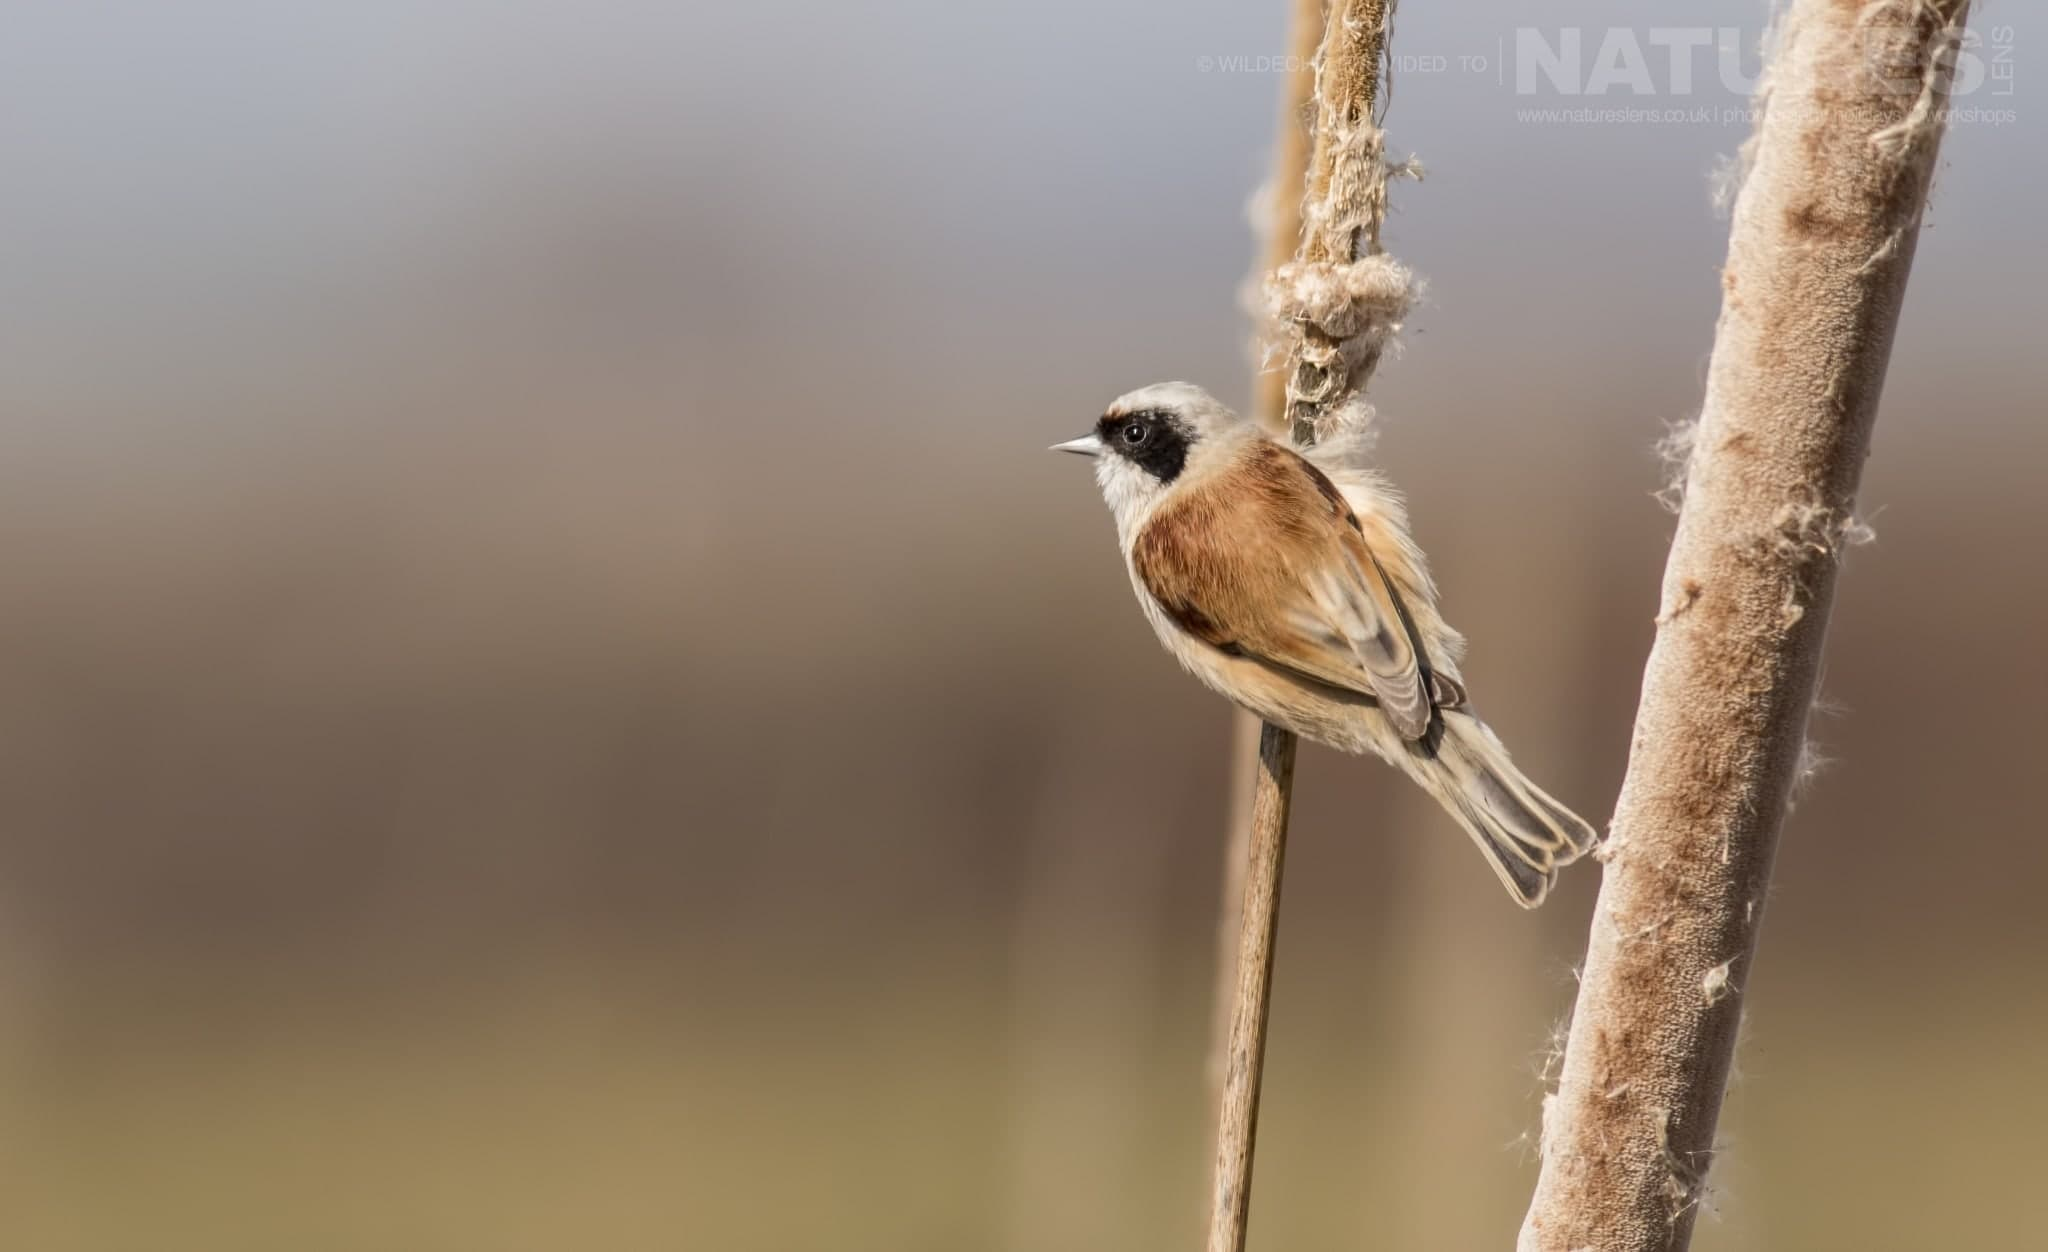 A Perched Penduline Tit   Typical Of The Type Of Image That May Be Captured During The Rollers & Bee Eaters Of Bulgaria Photography Holiday.jpg